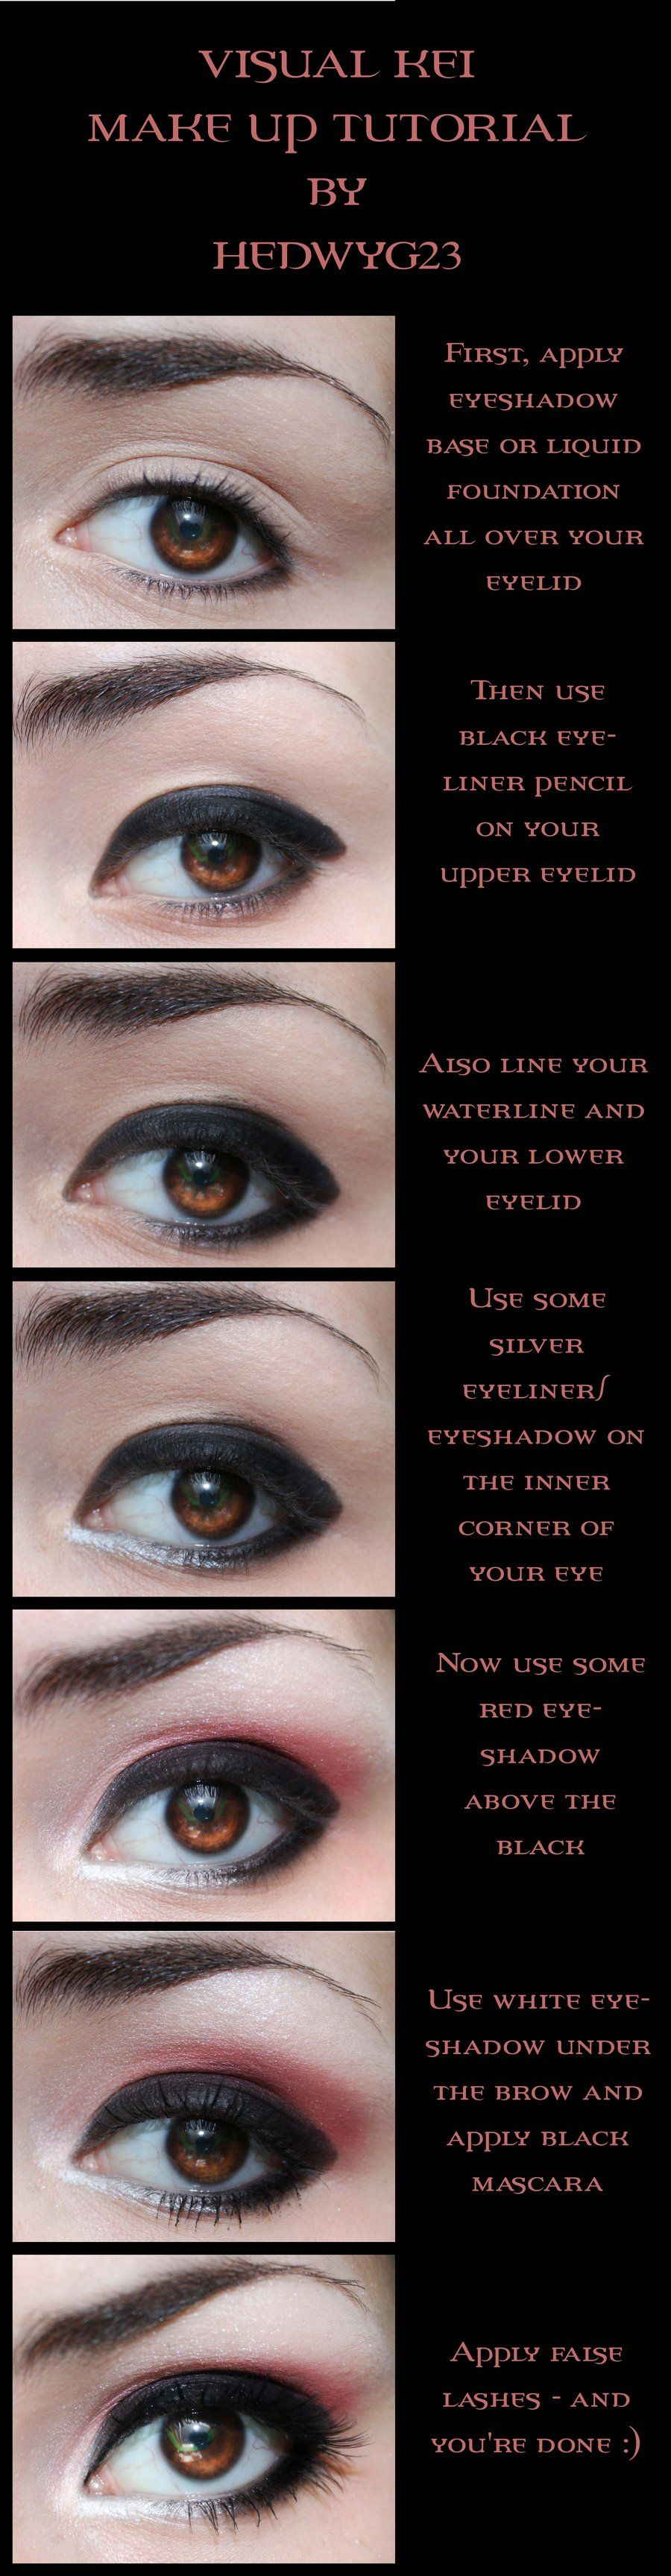 Visual Kei Eye Make Up Tutorial By Hedwyg23 Stuff To Try